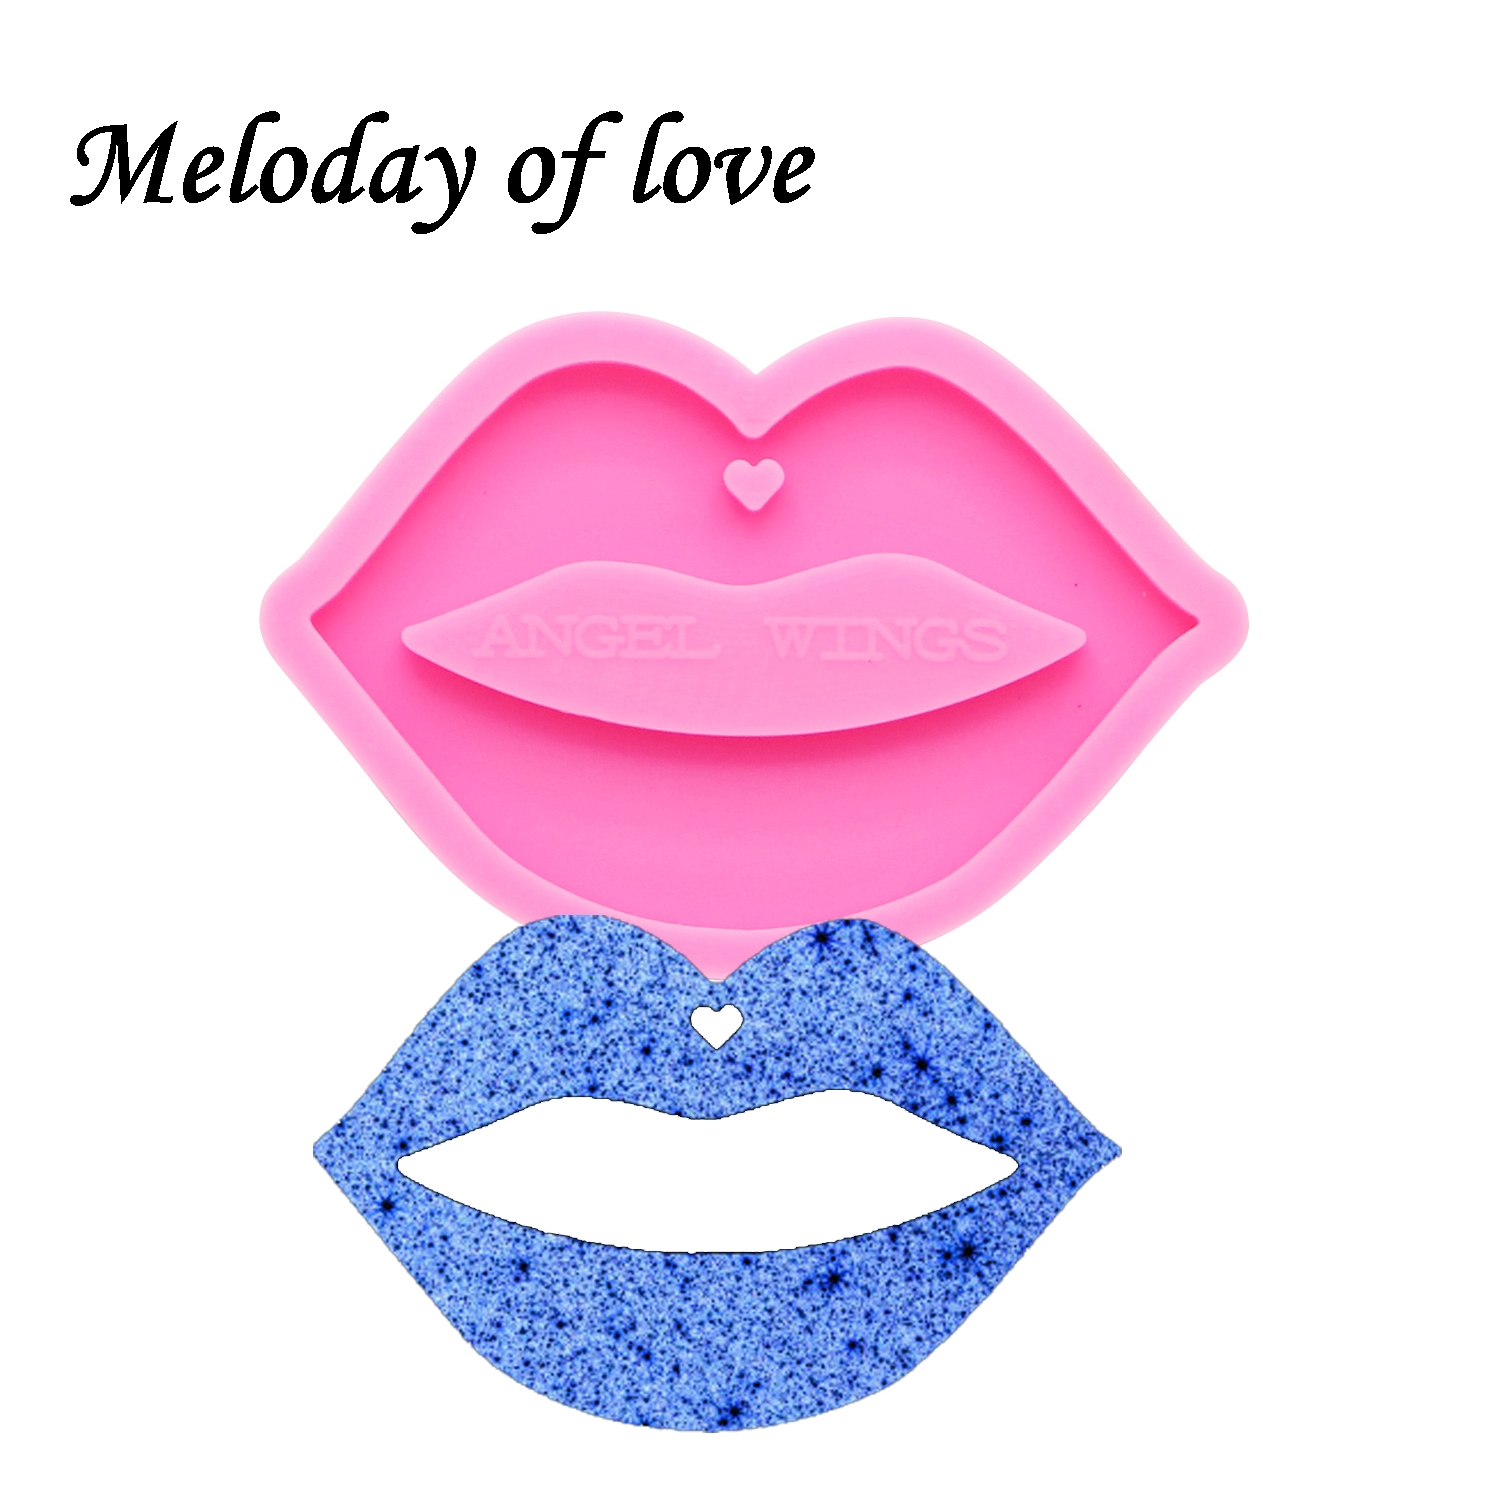 keychains moulds Shiny mouth shape molds for keychain DIY Lips resin keyring decoration jewelry silicone custom mold DY0170